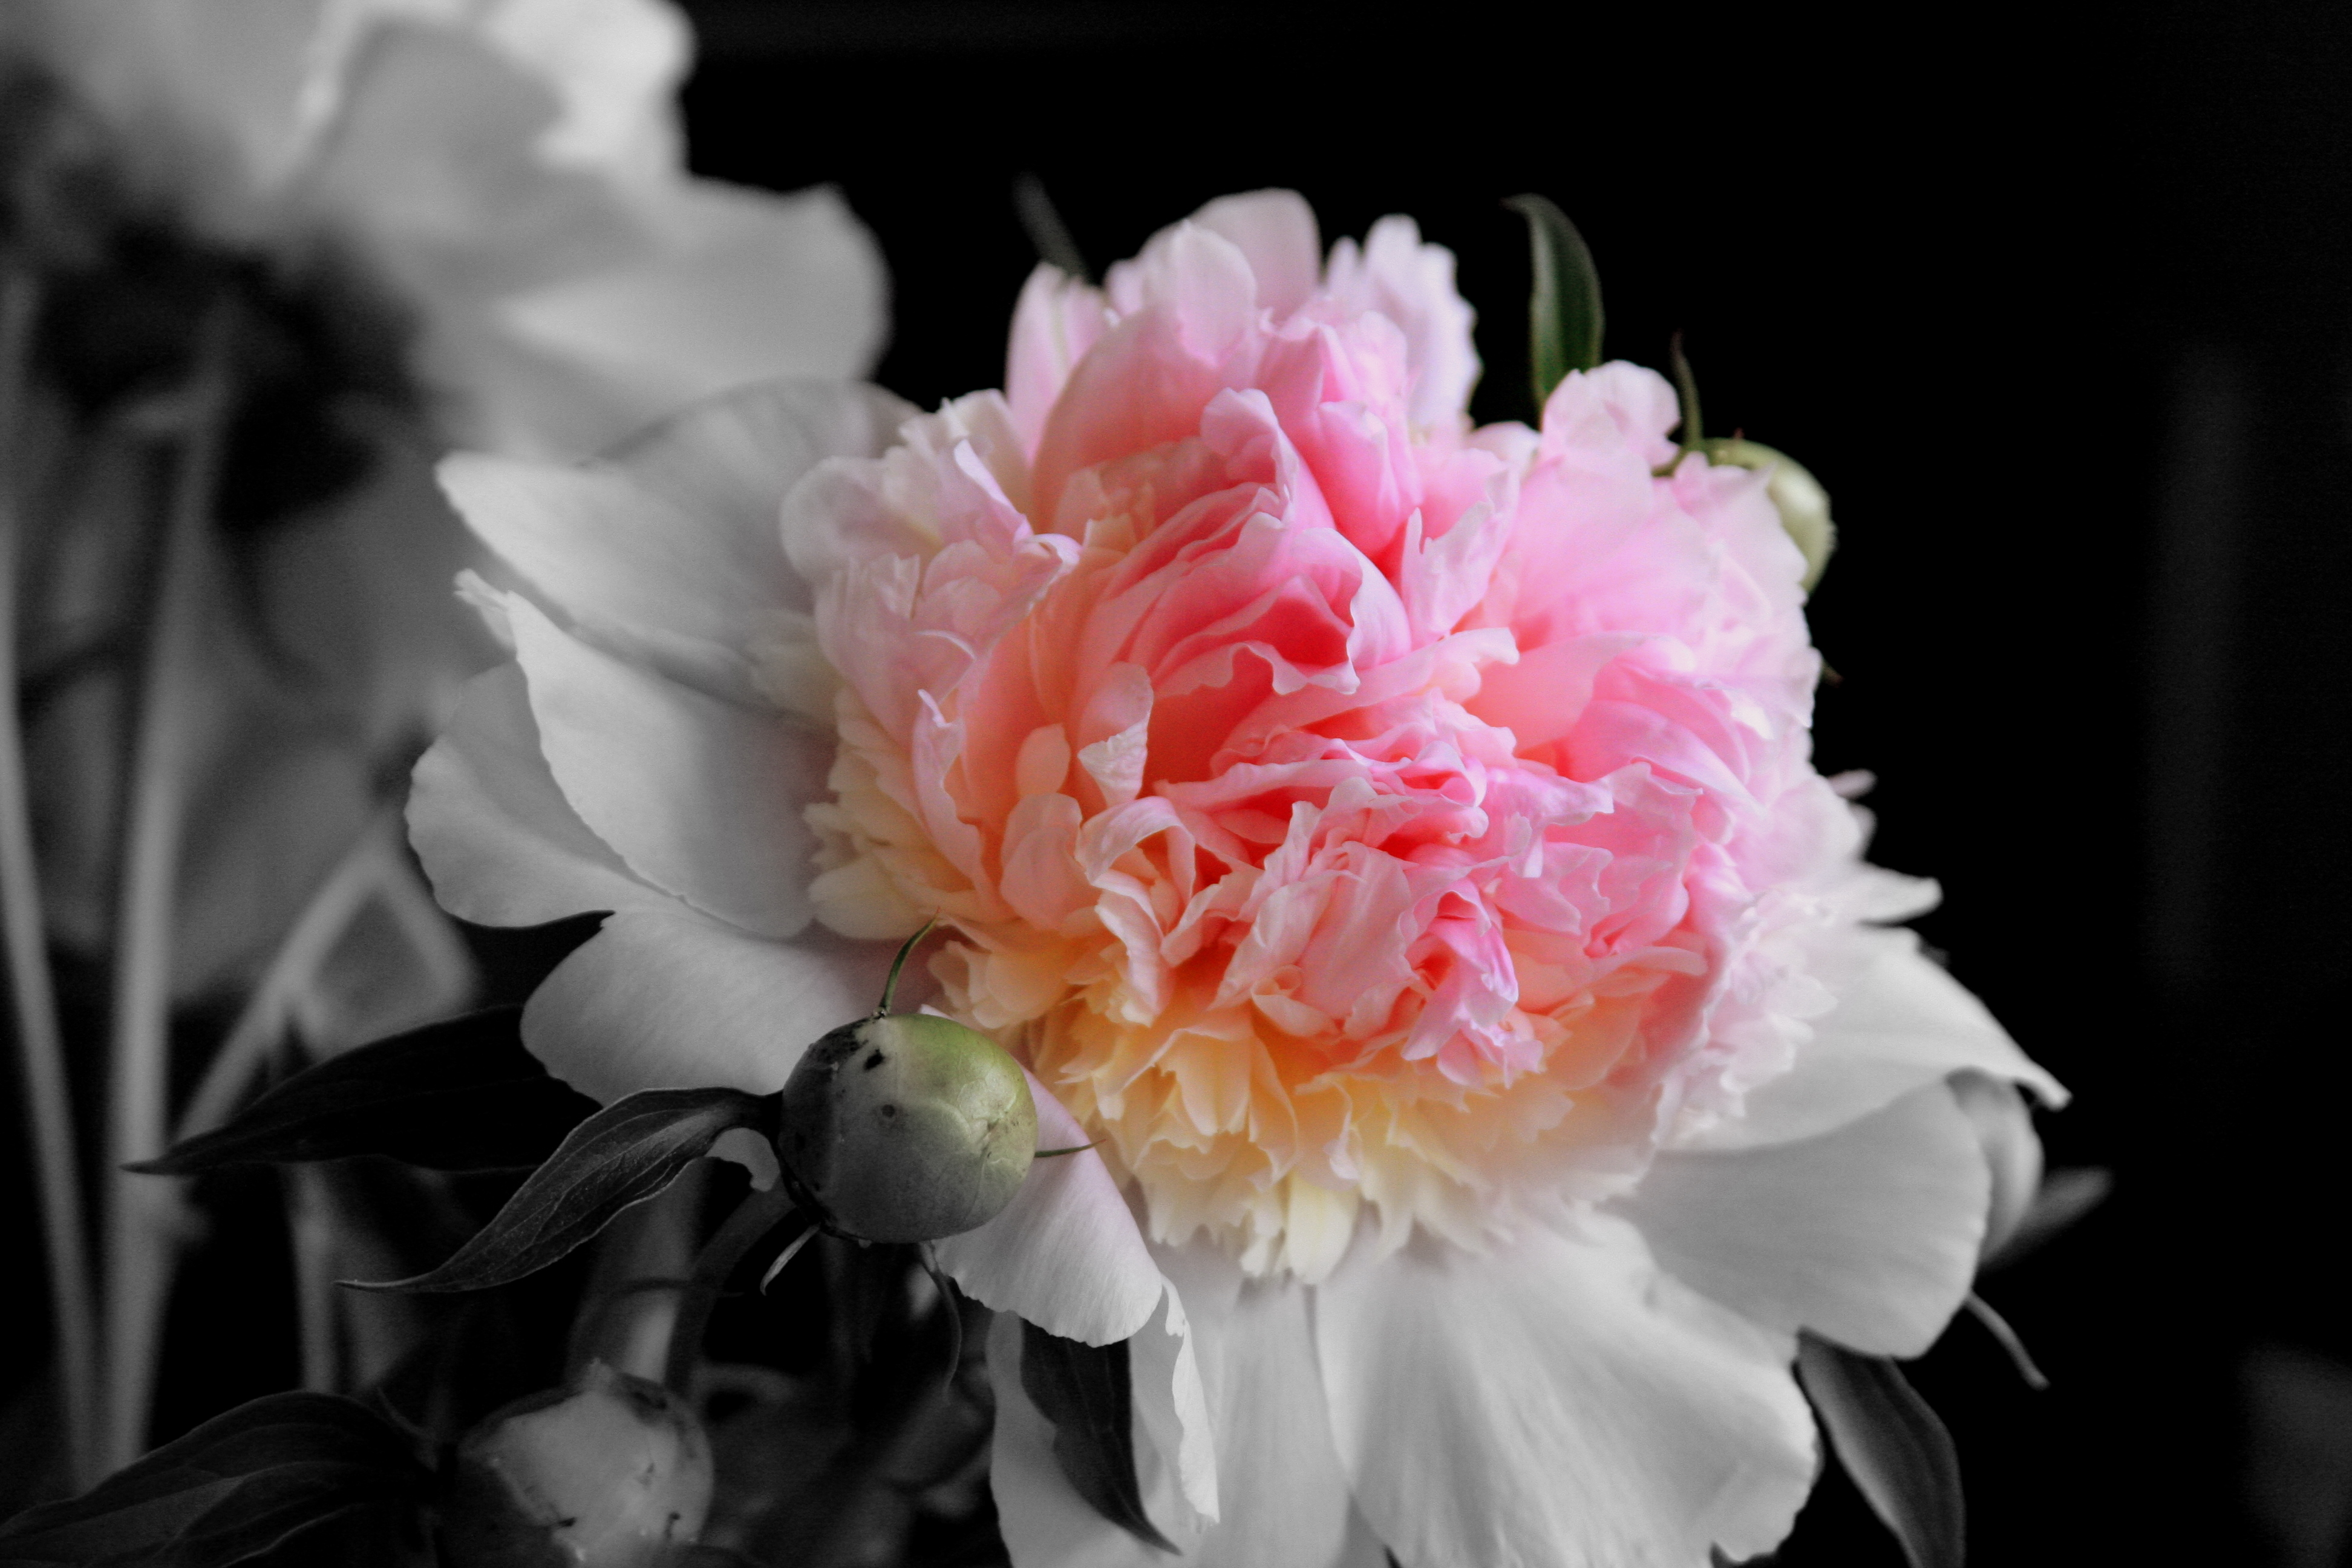 A Peony In Color Fading To Black And White Through My Lens